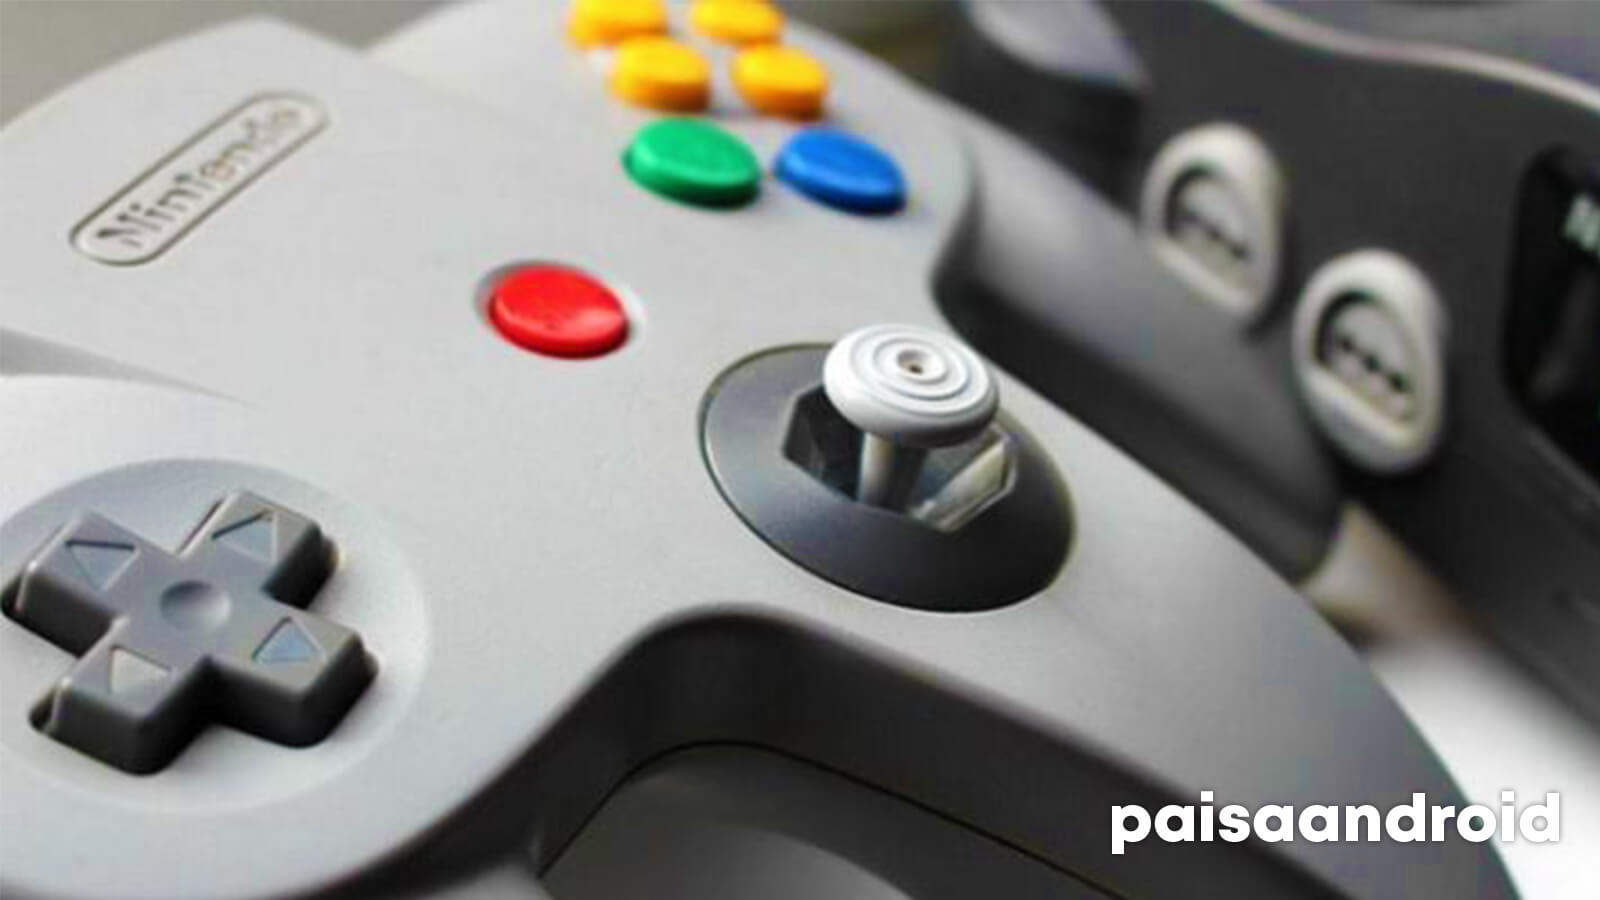 mejores emuladores n64 android